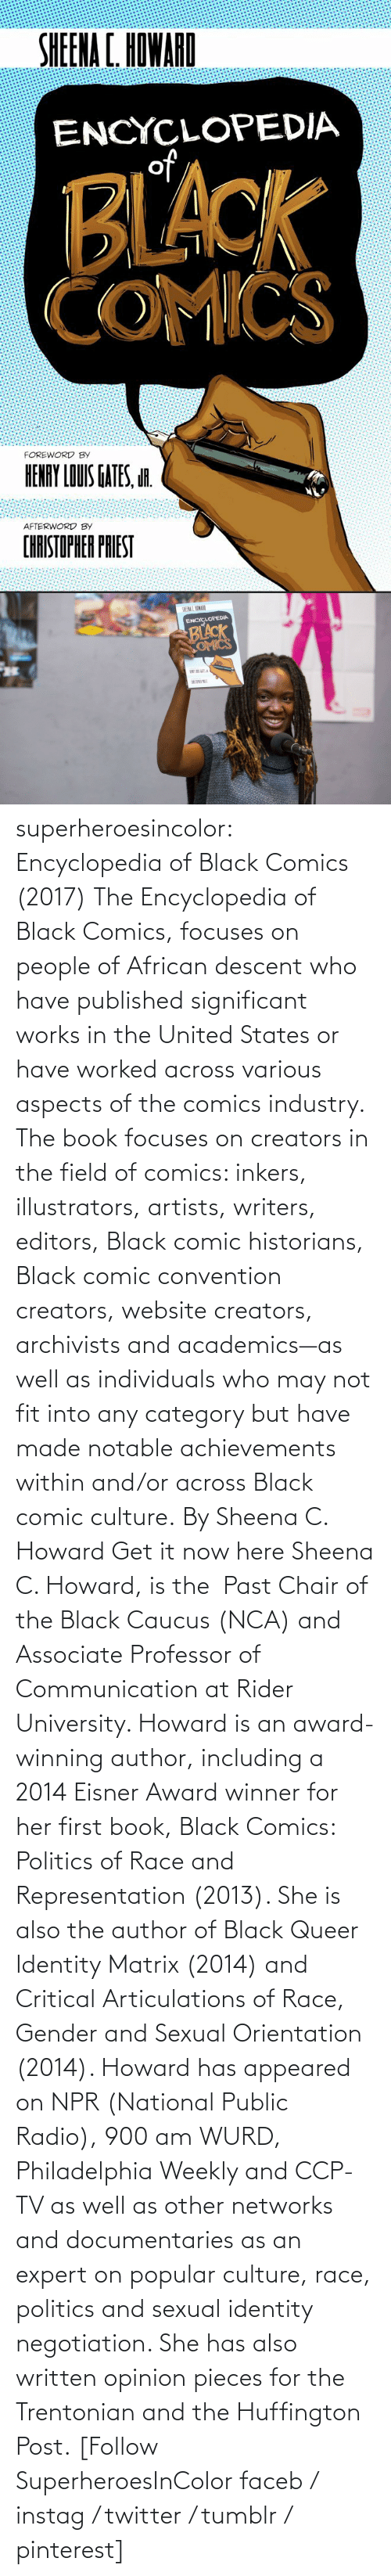 pinterest.com: superheroesincolor: Encyclopedia of Black Comics (2017) The Encyclopedia of Black Comics, focuses on people of African descent who have published significant works in the United States or have worked across various aspects of the comics industry.  The book focuses on creators in the field of comics: inkers, illustrators, artists, writers, editors, Black comic historians, Black comic convention creators, website creators, archivists and academics—as well as individuals who may not fit into any category but have made notable achievements within and/or across Black comic culture. By Sheena C. Howard Get it now here  Sheena C. Howard, is the  Past Chair of the Black Caucus (NCA) and Associate Professor of Communication at Rider University. Howard is an award-winning author, including a 2014 Eisner Award winner for her first book, Black Comics: Politics of Race and Representation (2013). She is also the author of Black Queer Identity Matrix (2014) and Critical Articulations of Race, Gender and Sexual Orientation (2014). Howard has appeared on NPR (National Public Radio), 900 am WURD, Philadelphia Weekly and CCP-TV as well as other networks and documentaries as an expert on popular culture, race, politics and sexual identity negotiation. She has also written opinion pieces for the Trentonian and the Huffington Post.   [Follow SuperheroesInColor faceb / instag / twitter / tumblr / pinterest]